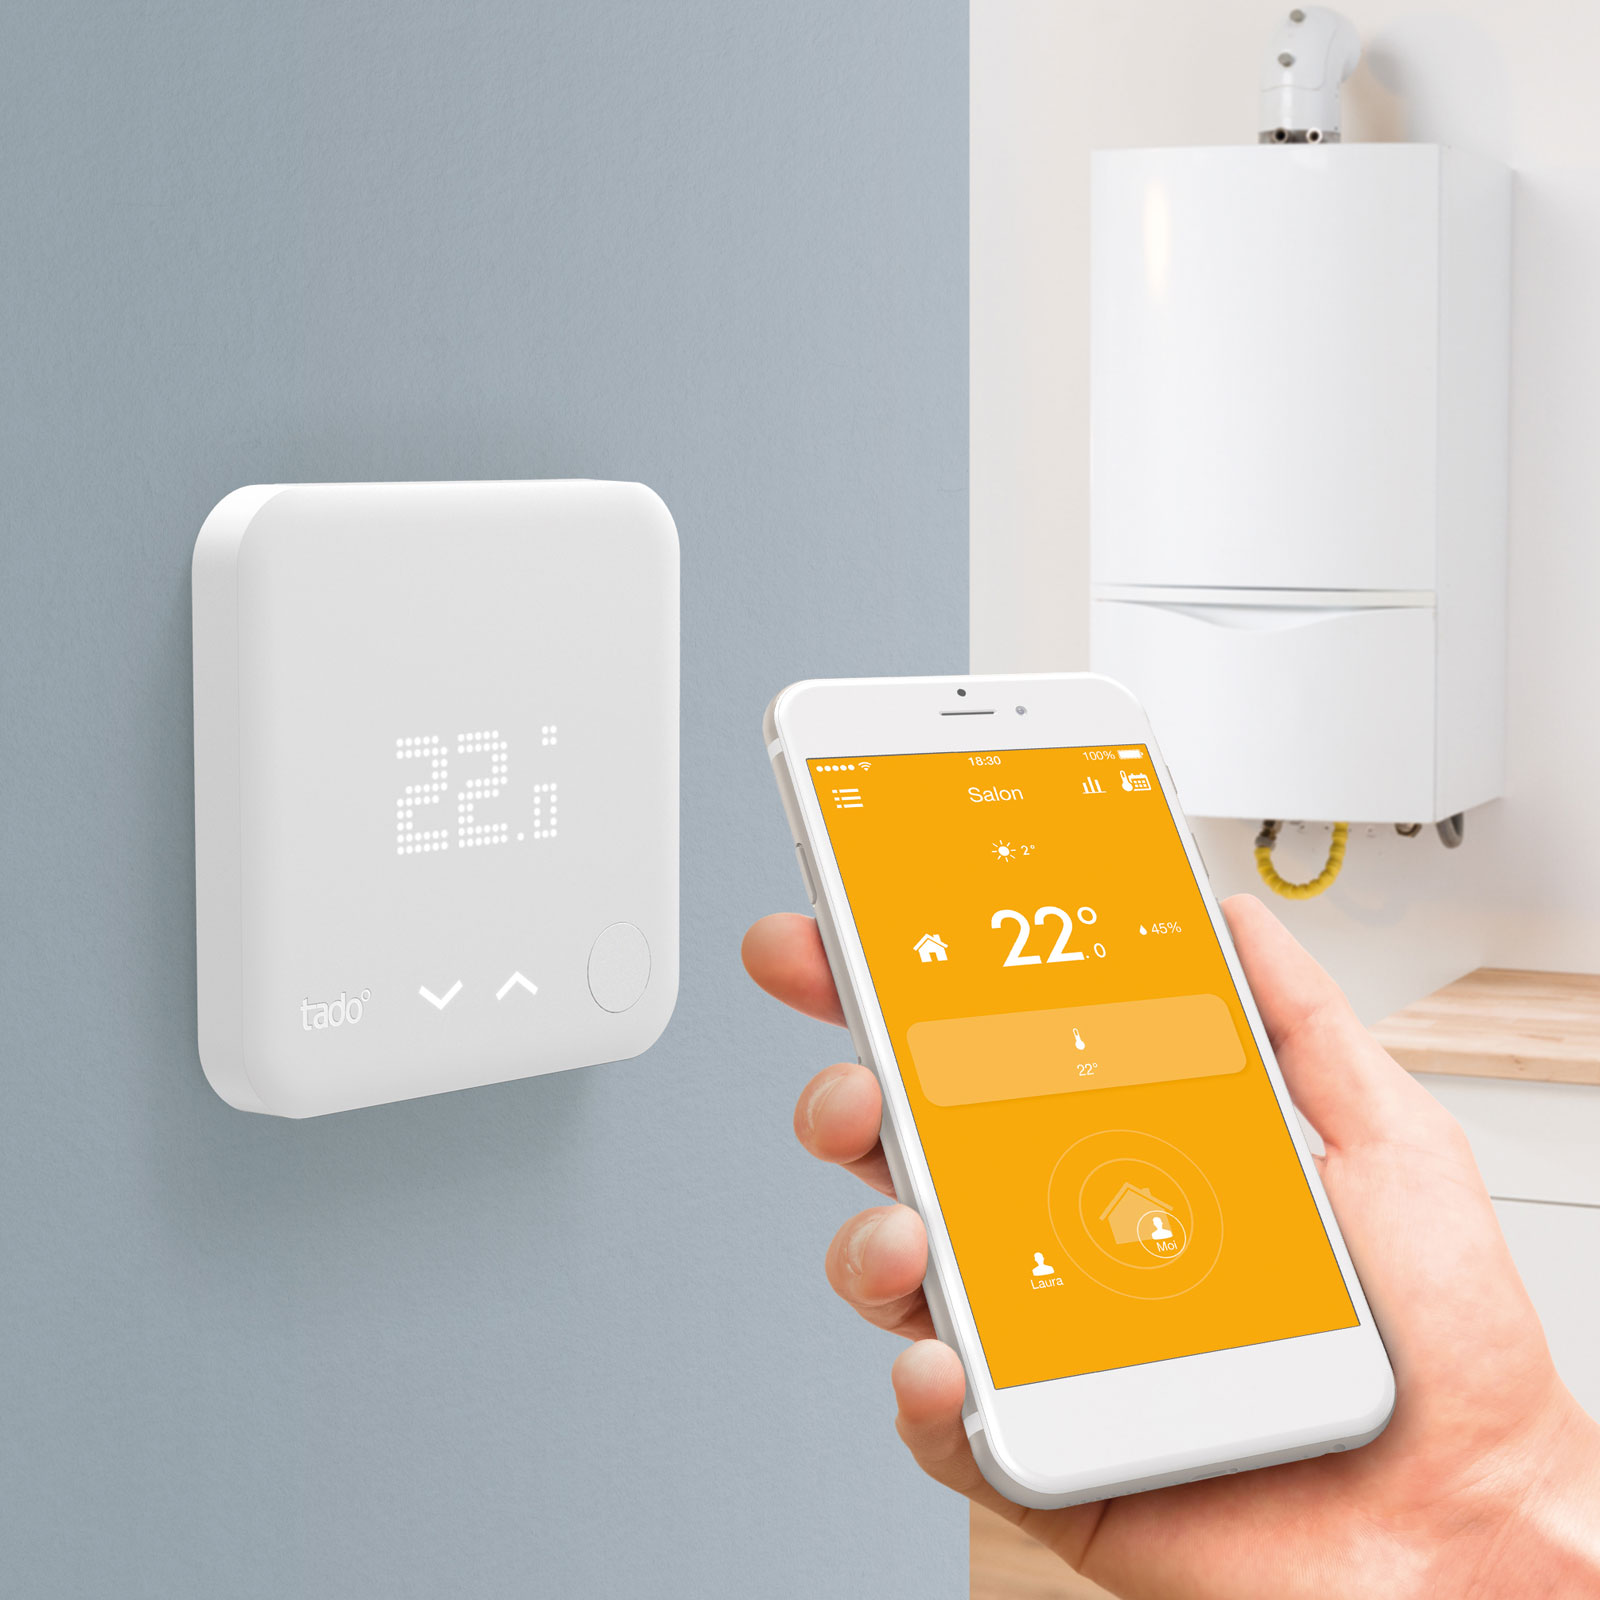 tado thermostat connect kit de d marrage v2 accessoires tado sur. Black Bedroom Furniture Sets. Home Design Ideas